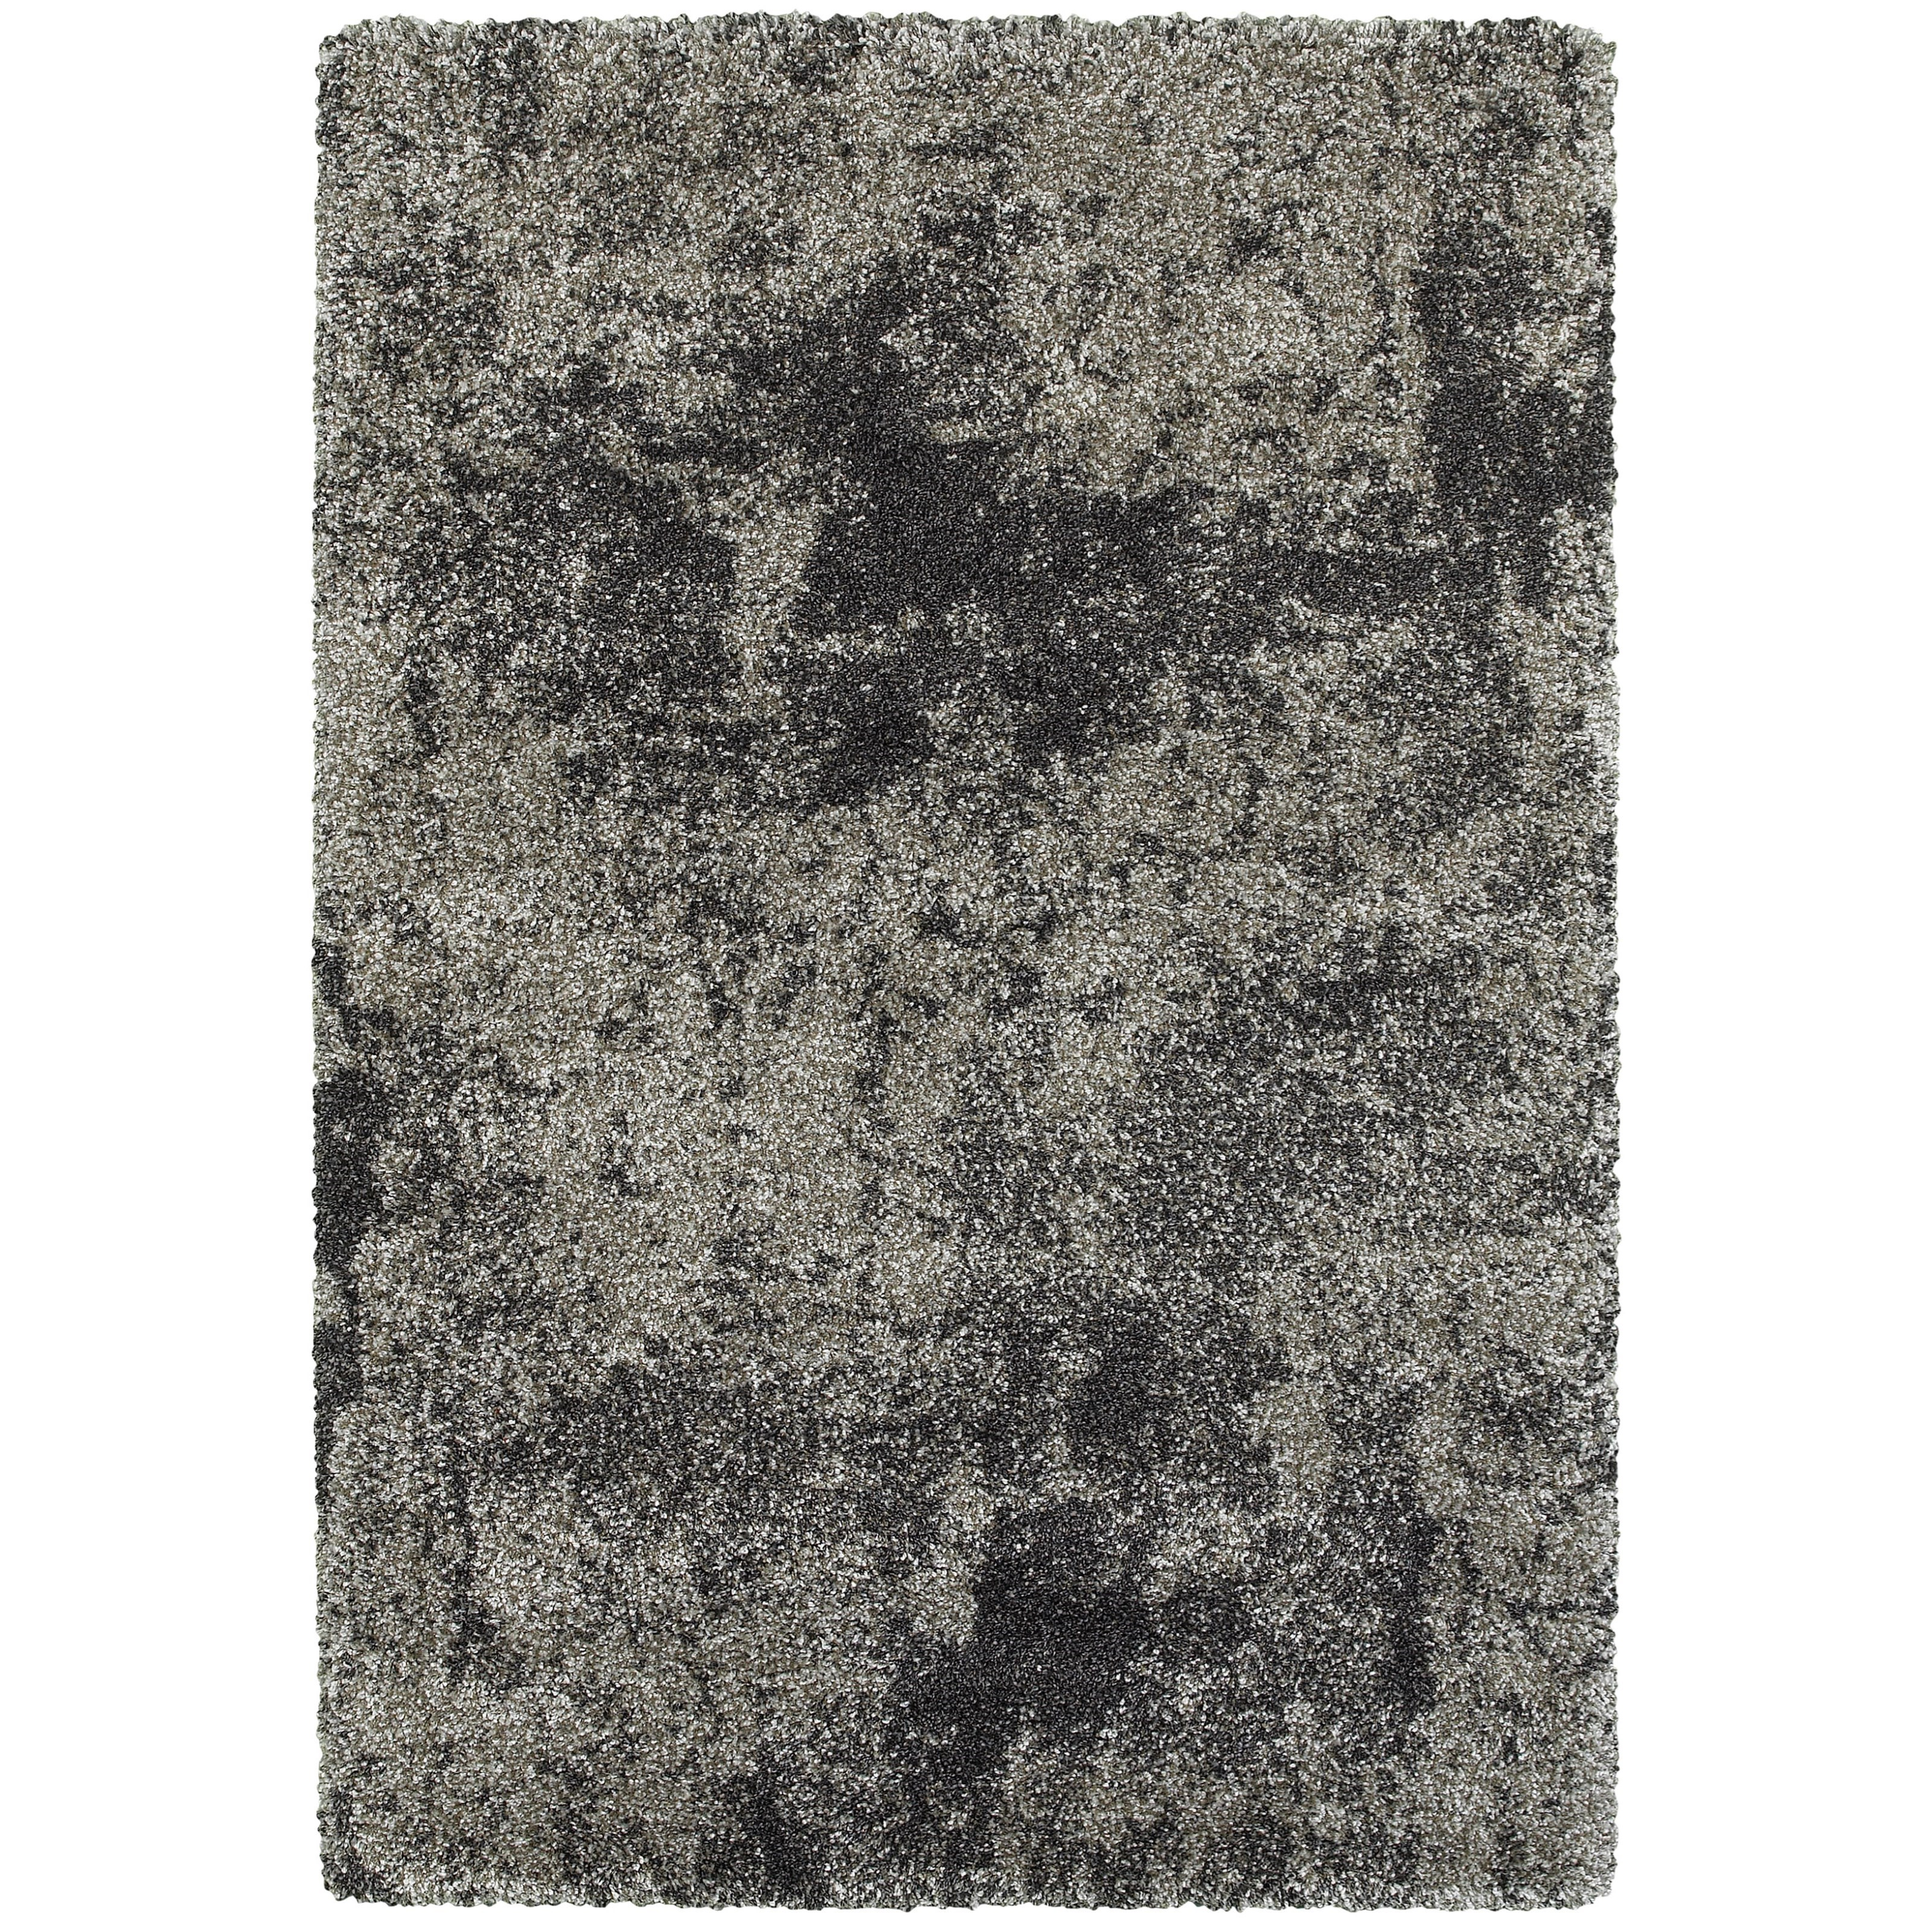 "5' 3"" X  7' 6"" Shag Grey/ Charcoal Rectangle"